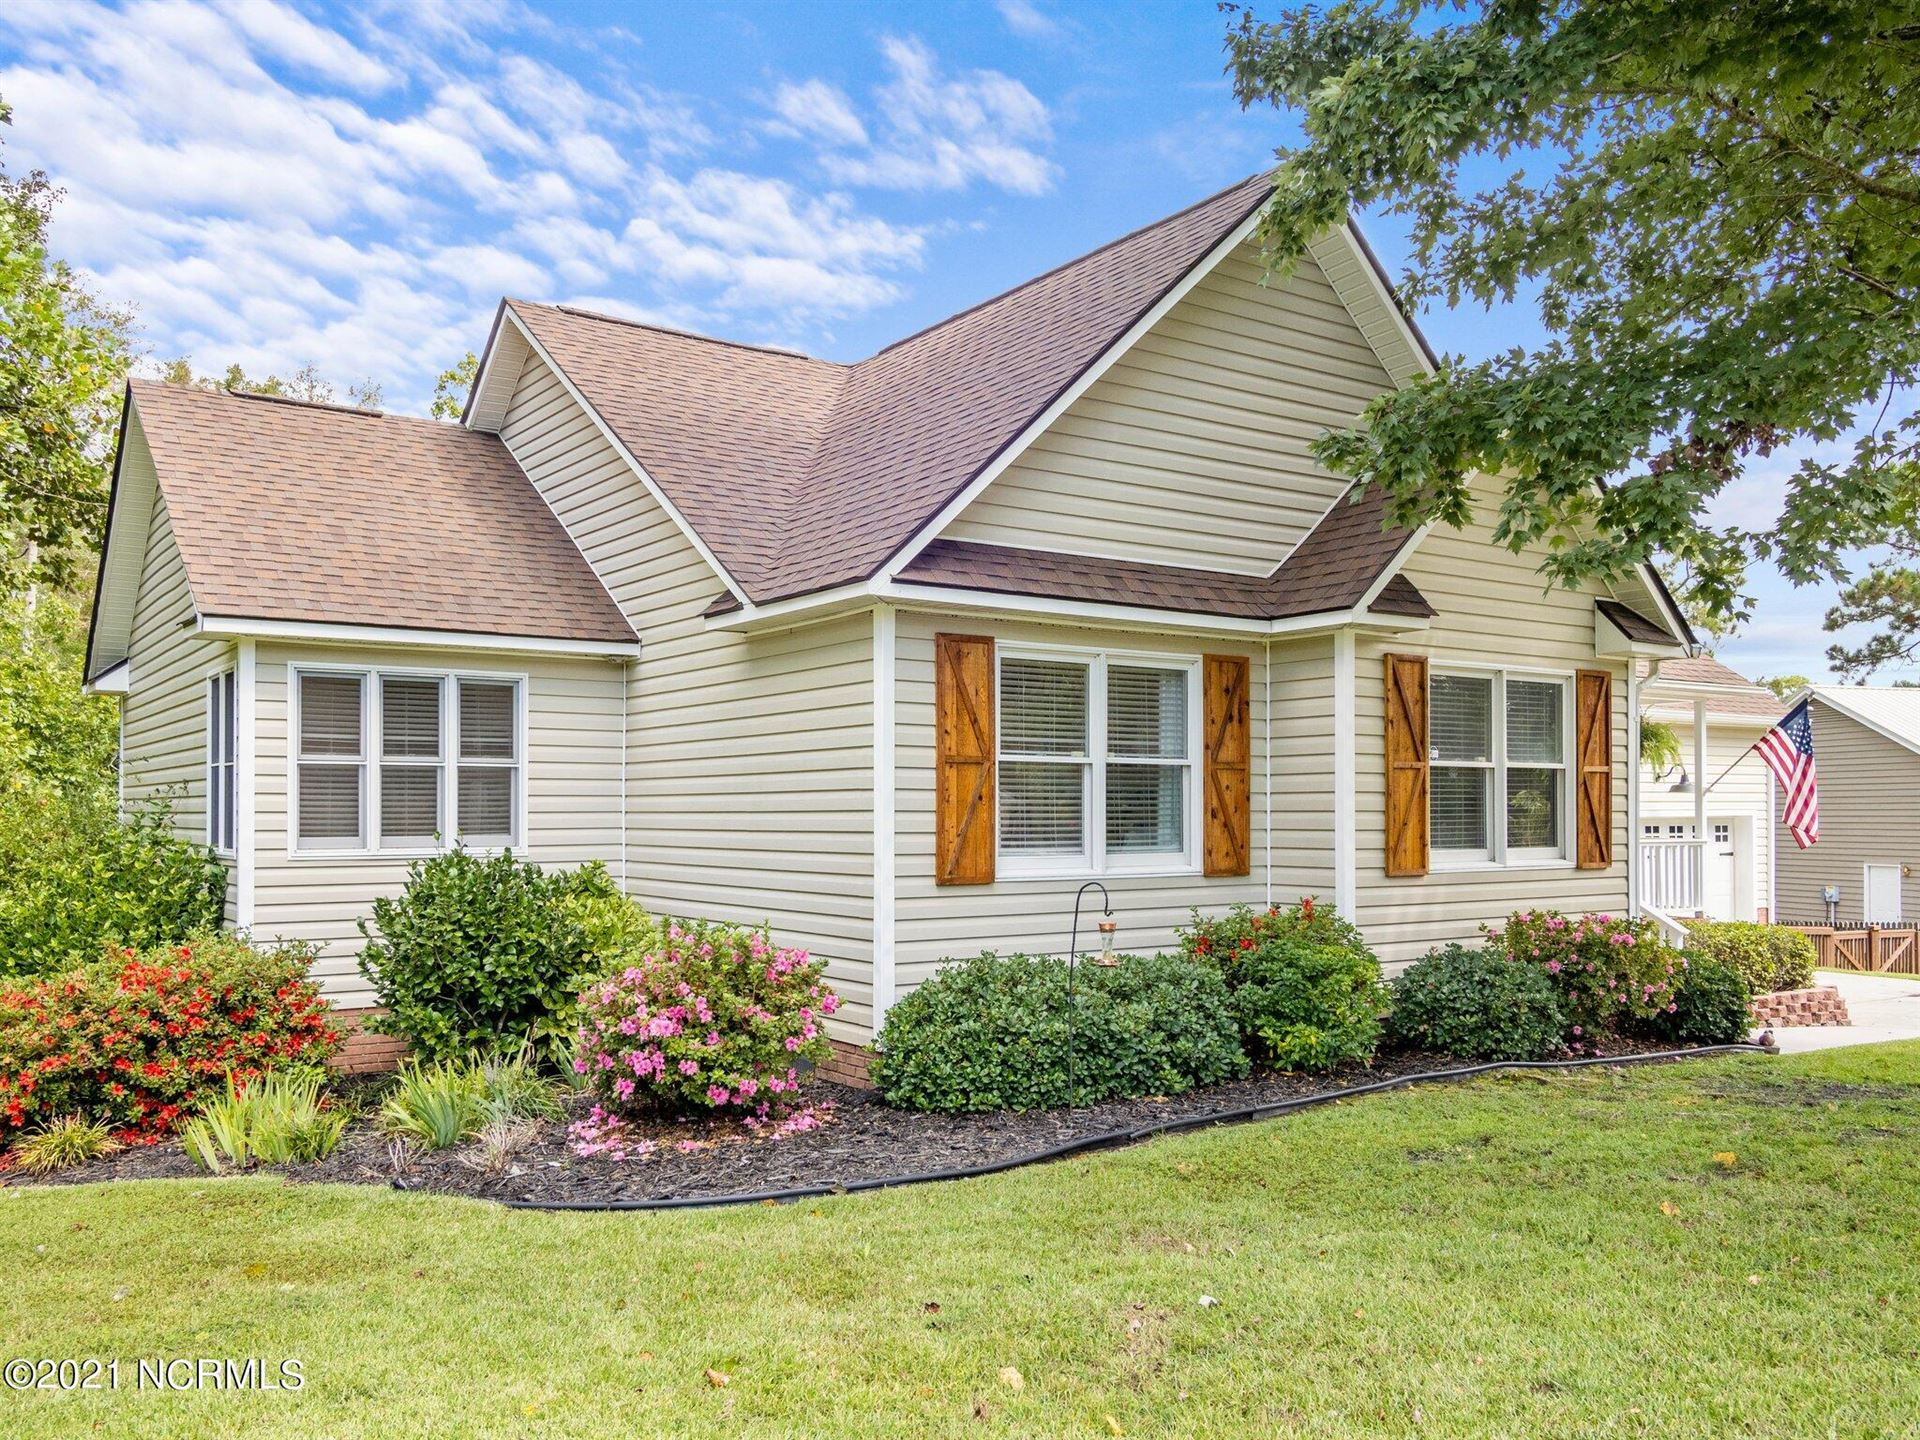 Photo of 426 Whirlaway Boulevard, Sneads Ferry, NC 28460 (MLS # 100292147)